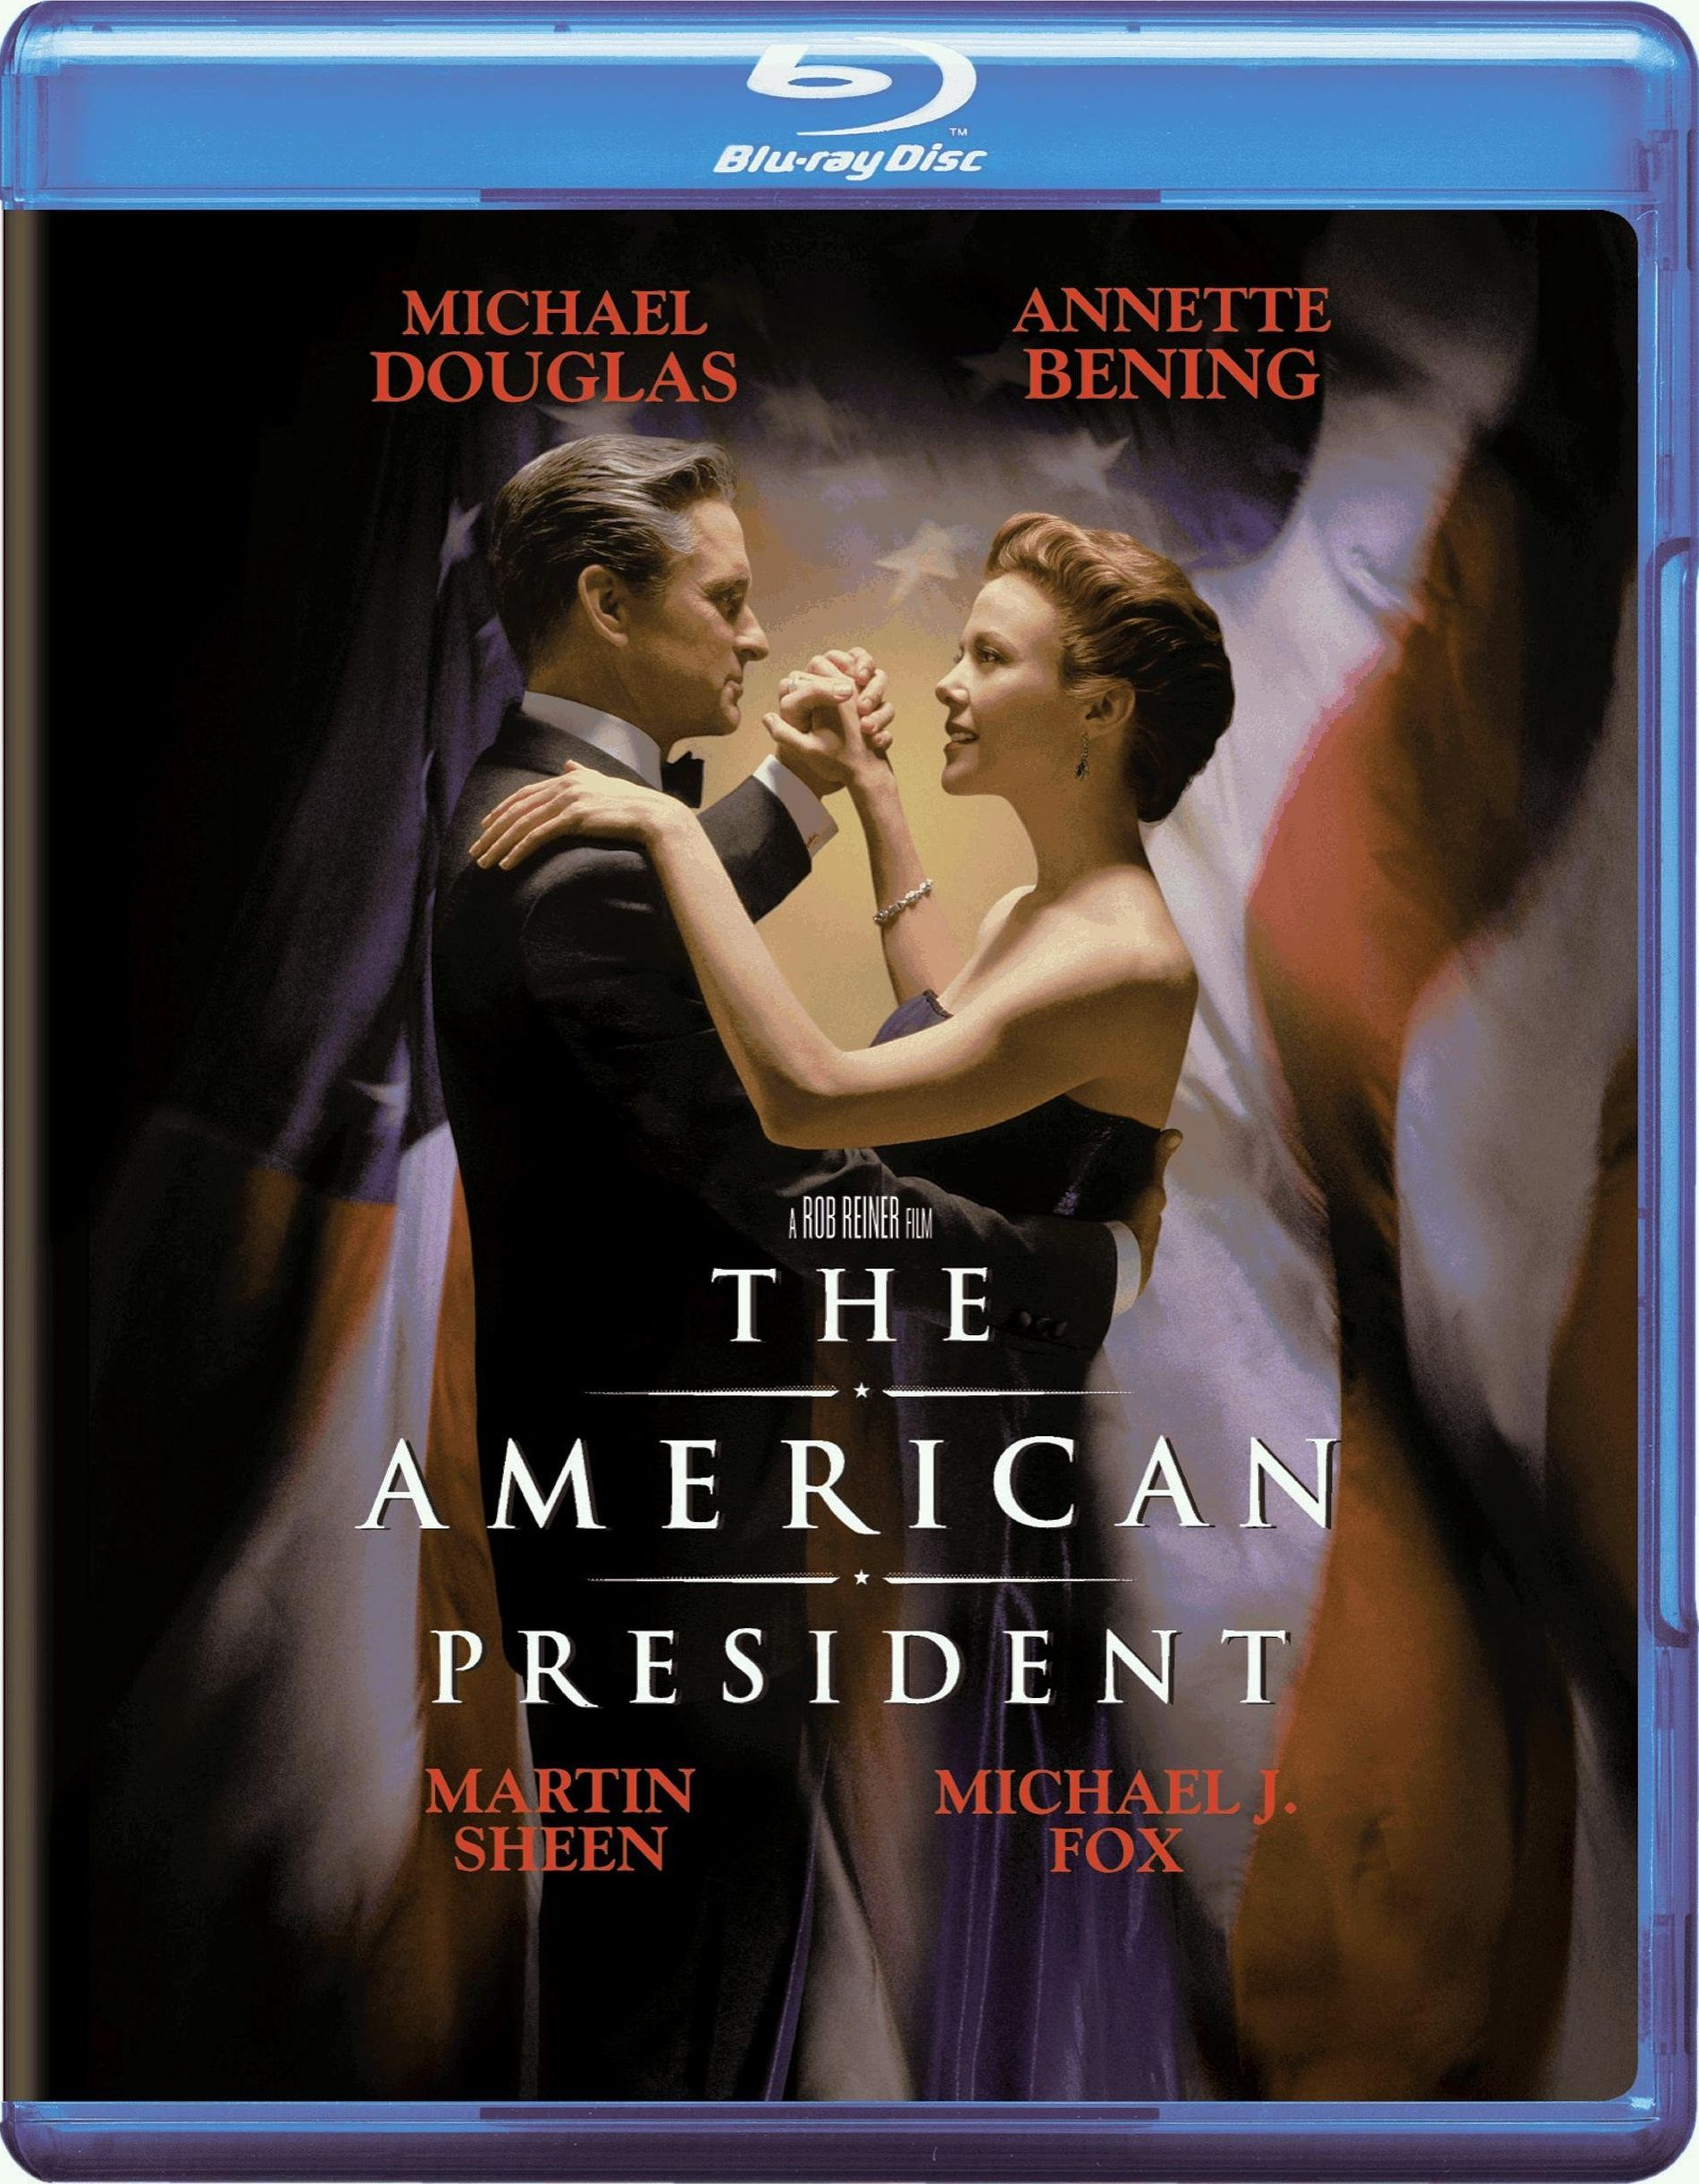 the american president The american president is a 1995 film about the conflicts of a widowed president between a new love and a legislative agenda directed by rob reiner.